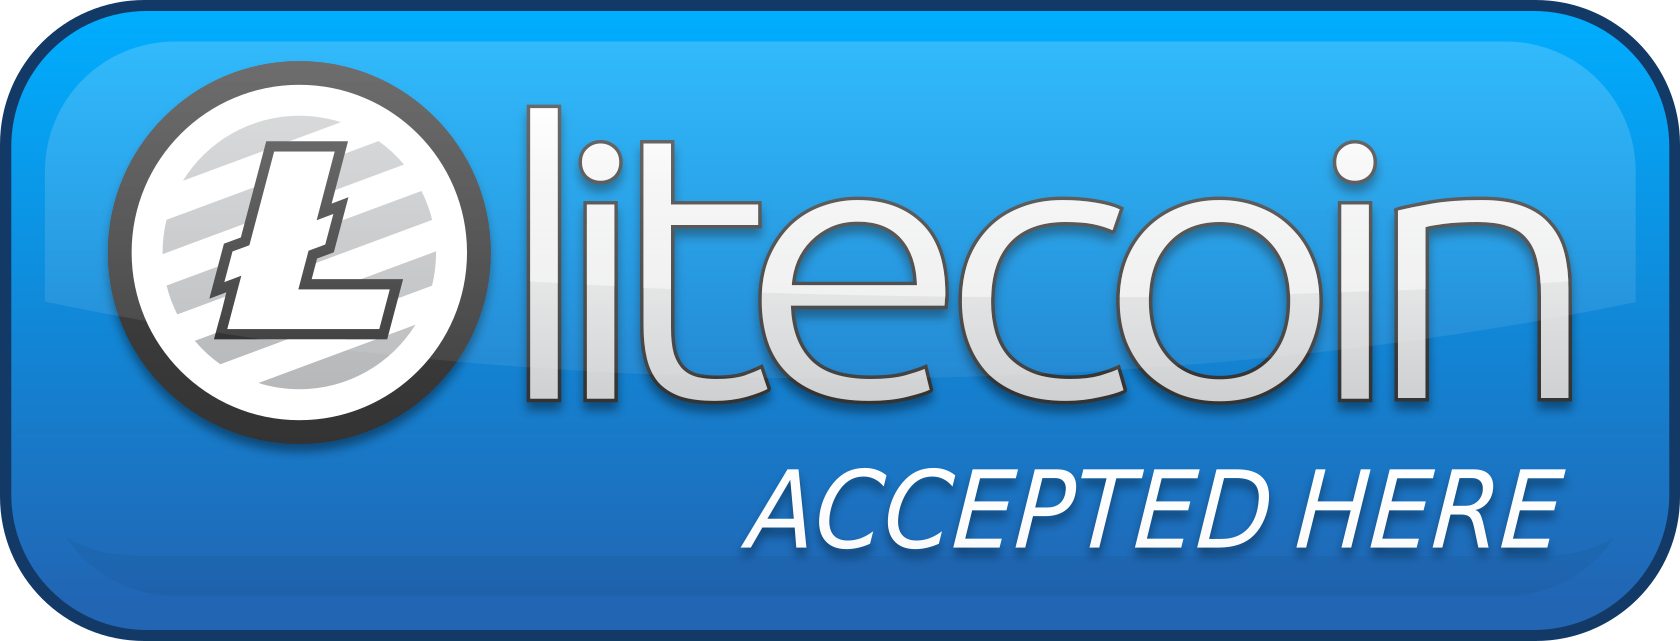 litecoin-accepted-here-05.png